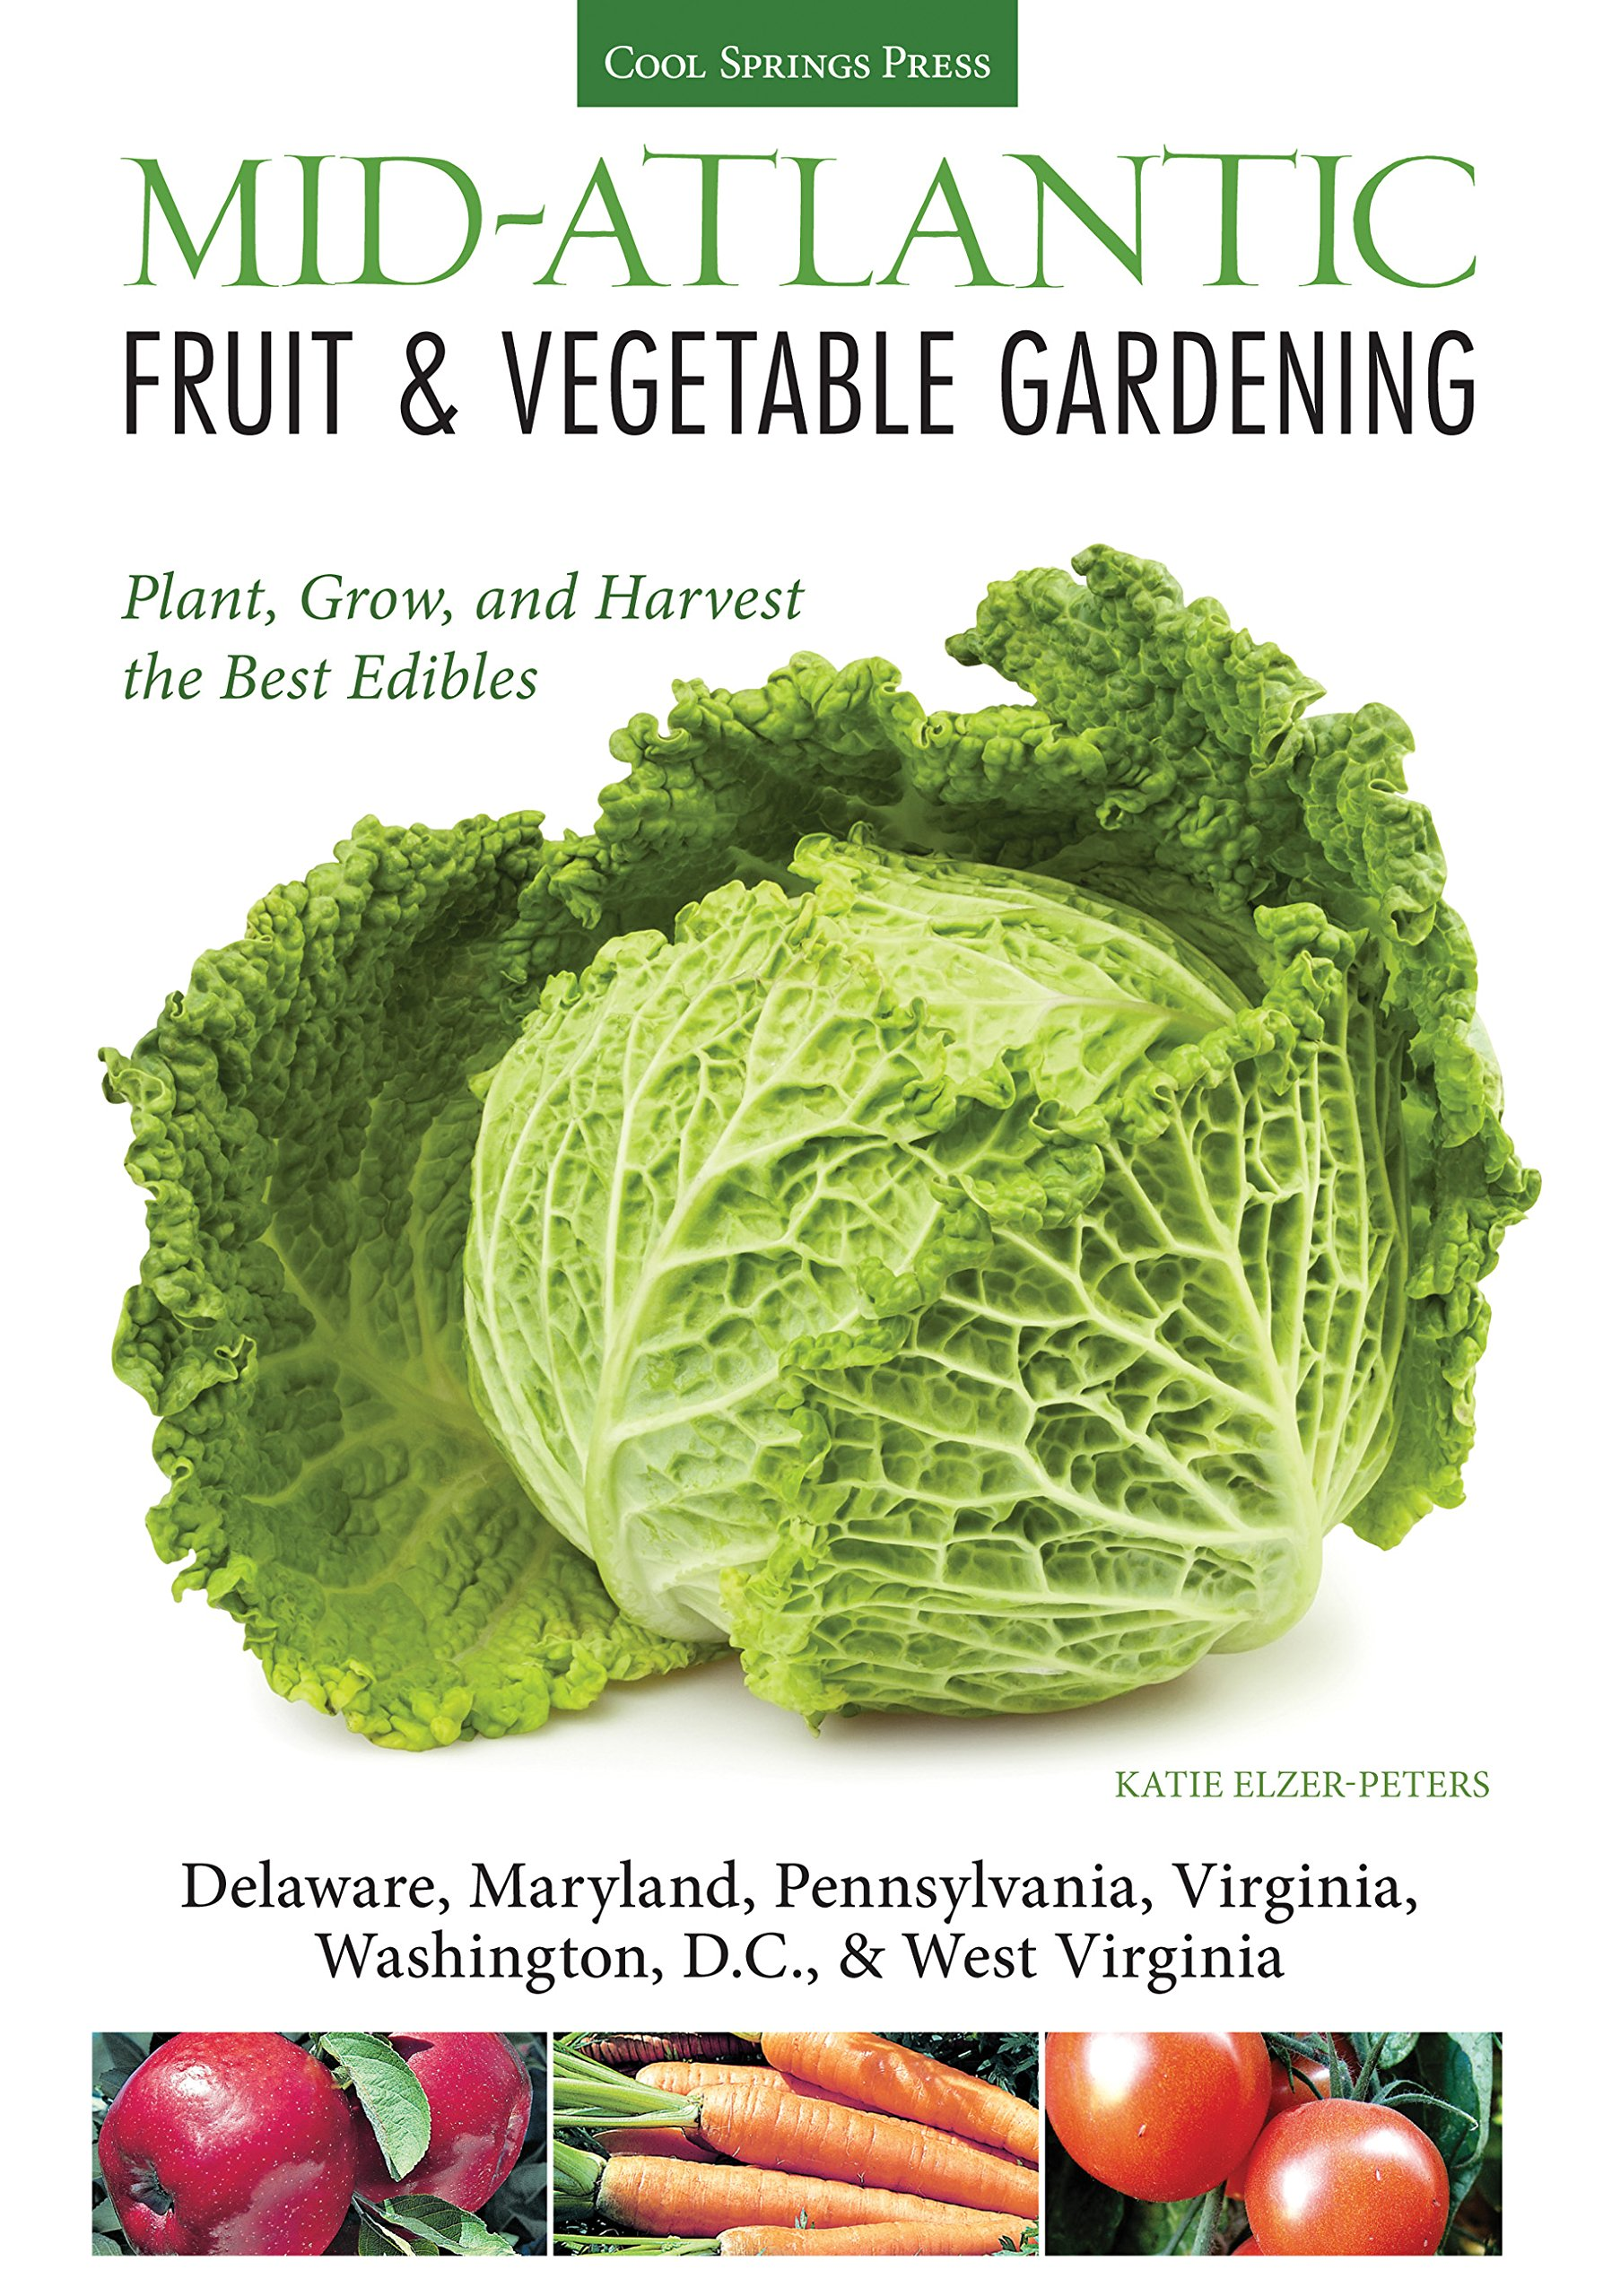 Mid-Atlantic fruit & vegetable gardening : plant, grow, and harvest the best edibles